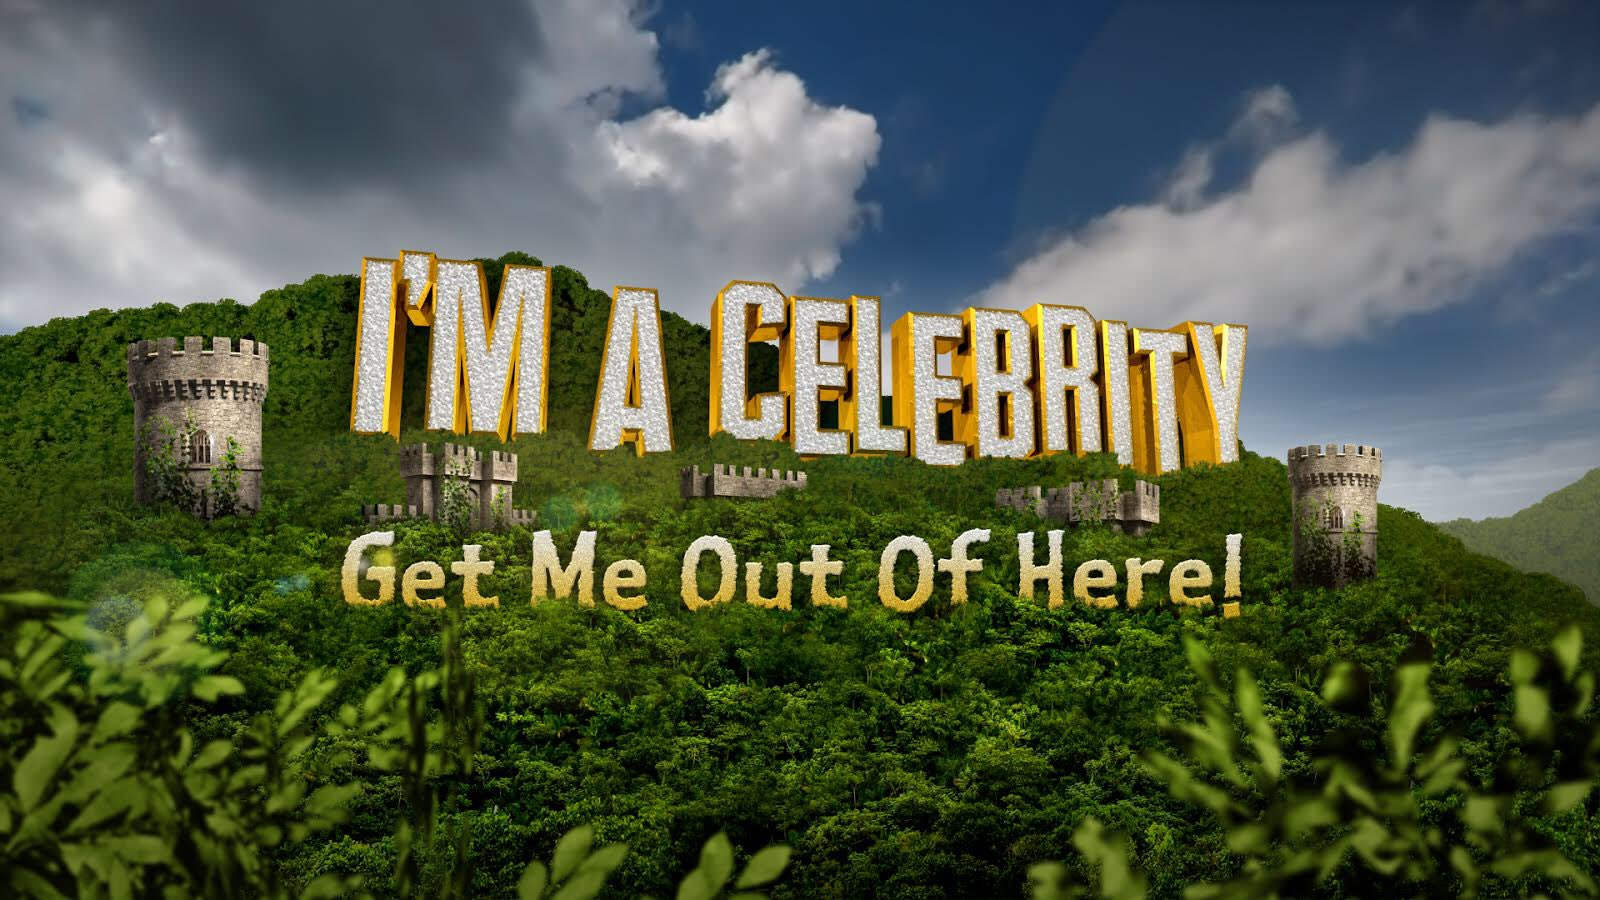 Gwrych Castle interview with Dr Mark Baker – The castle and I'm a celebrity